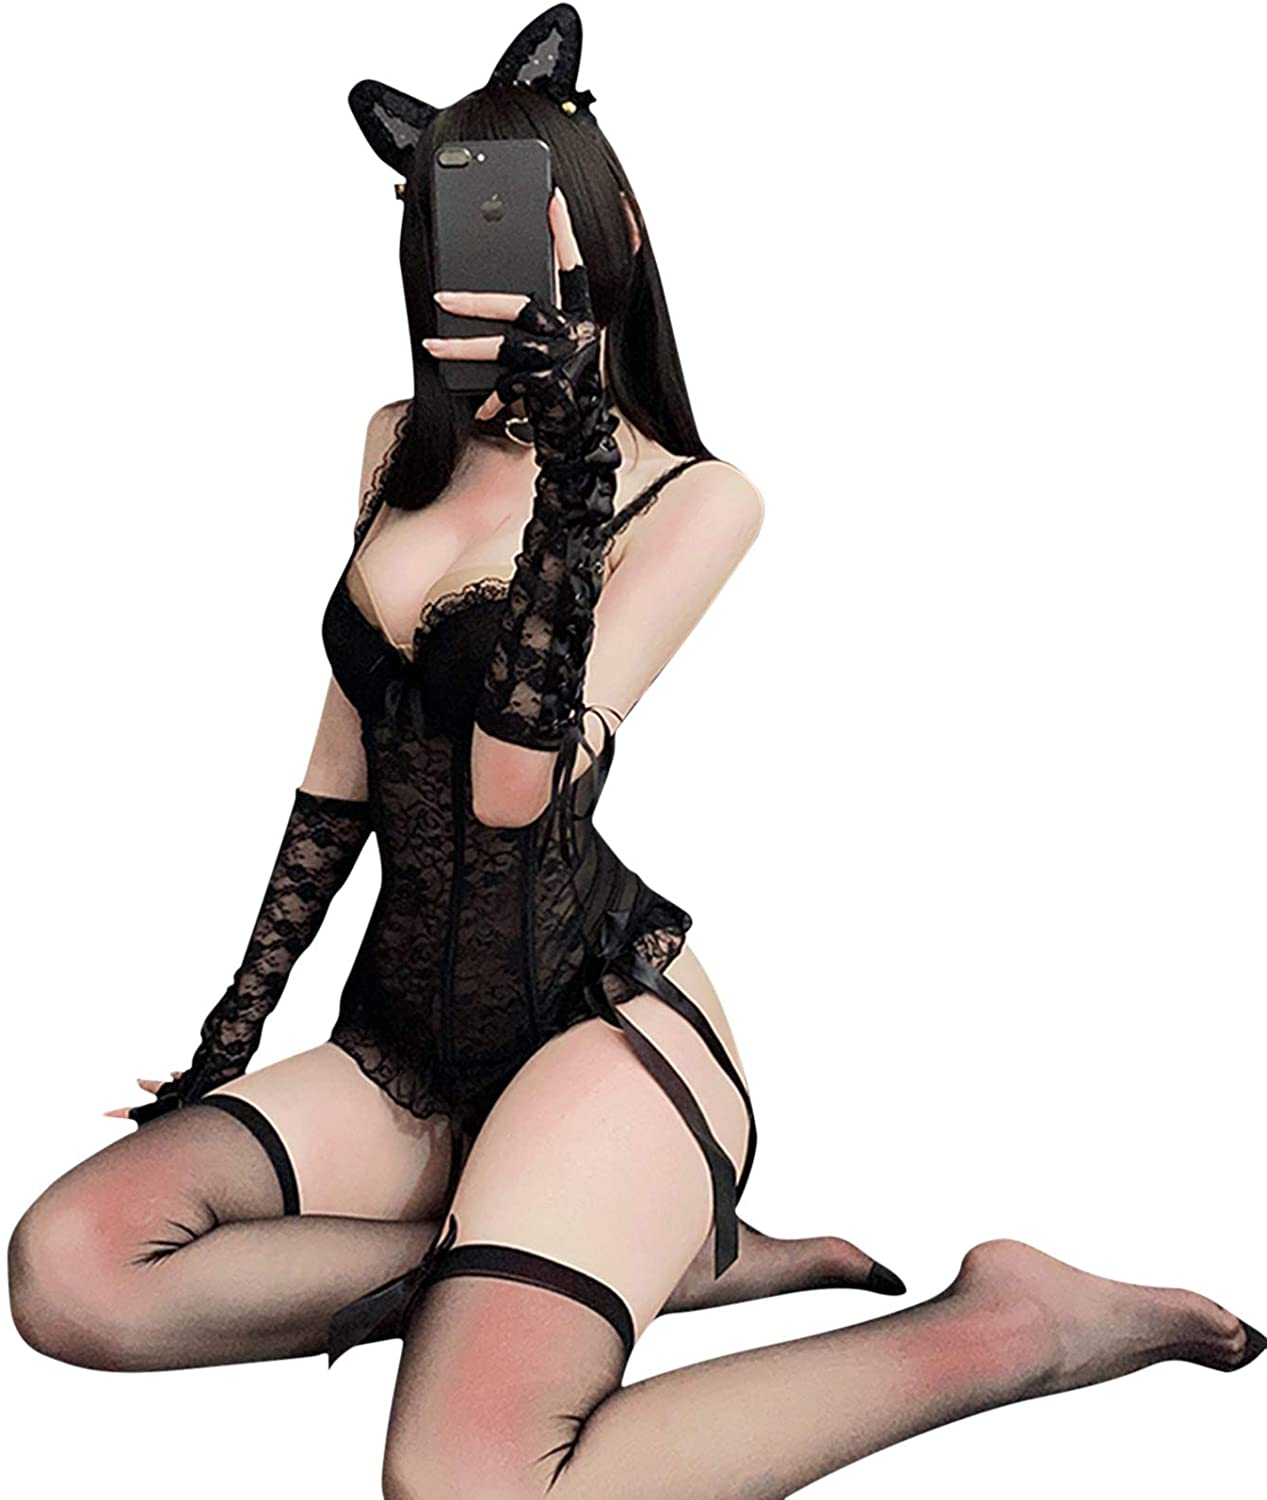 Sexy Lingerie Catwoman Role Playing Gathering Small Breast Uniform Temptation Passion Lingerie Couple Flirting Large Size Suit